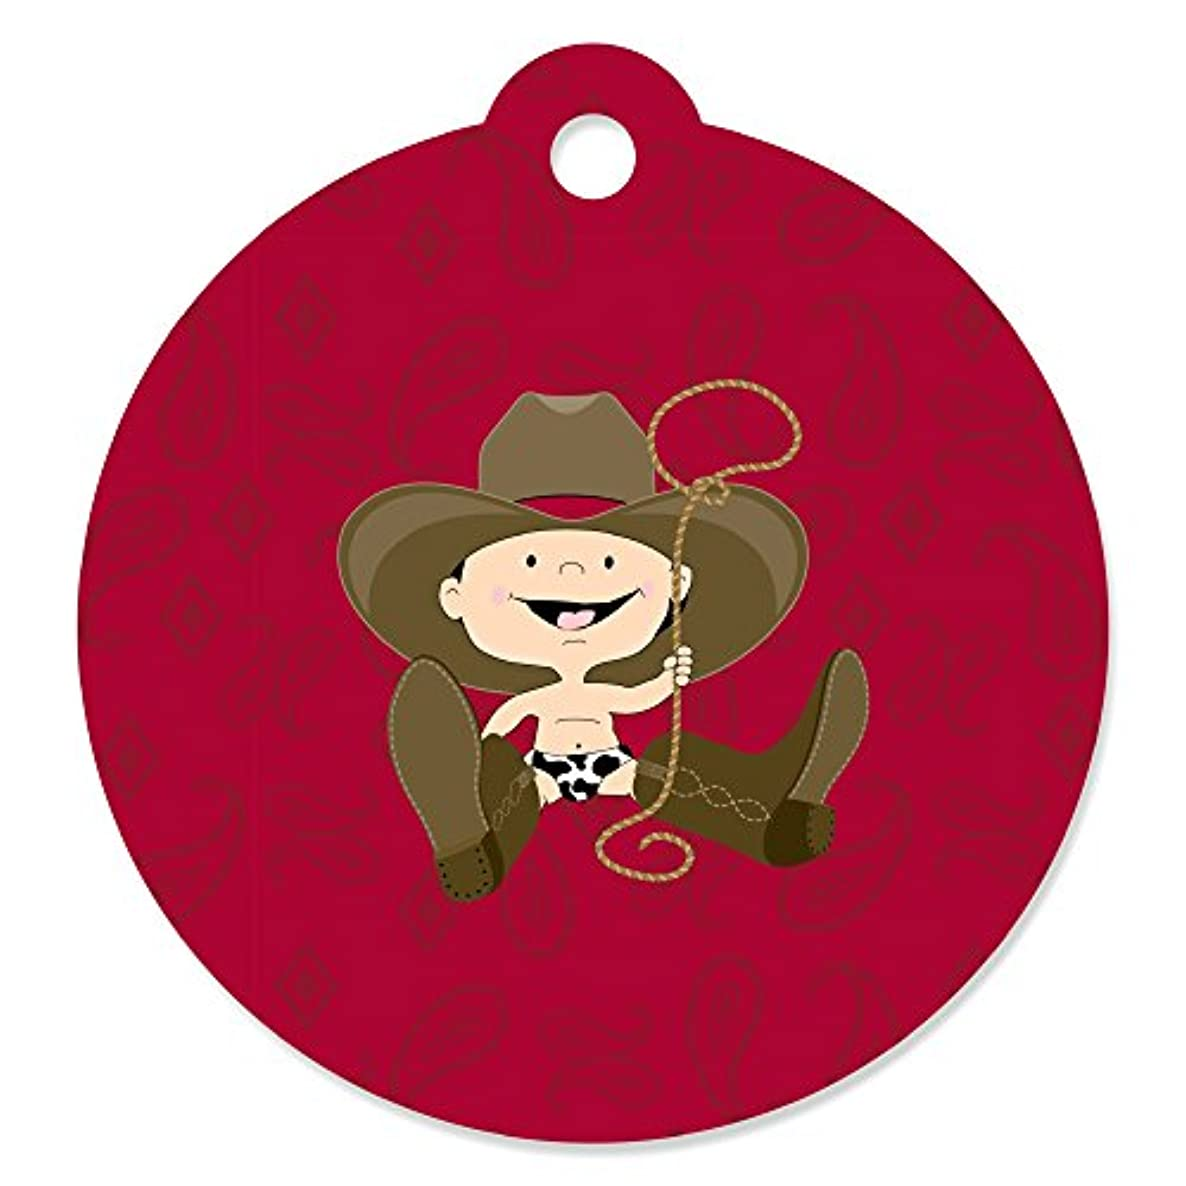 Little Cowboy - Western Baby Shower or Birthday Party Favor Gift Tags (Set of 20)